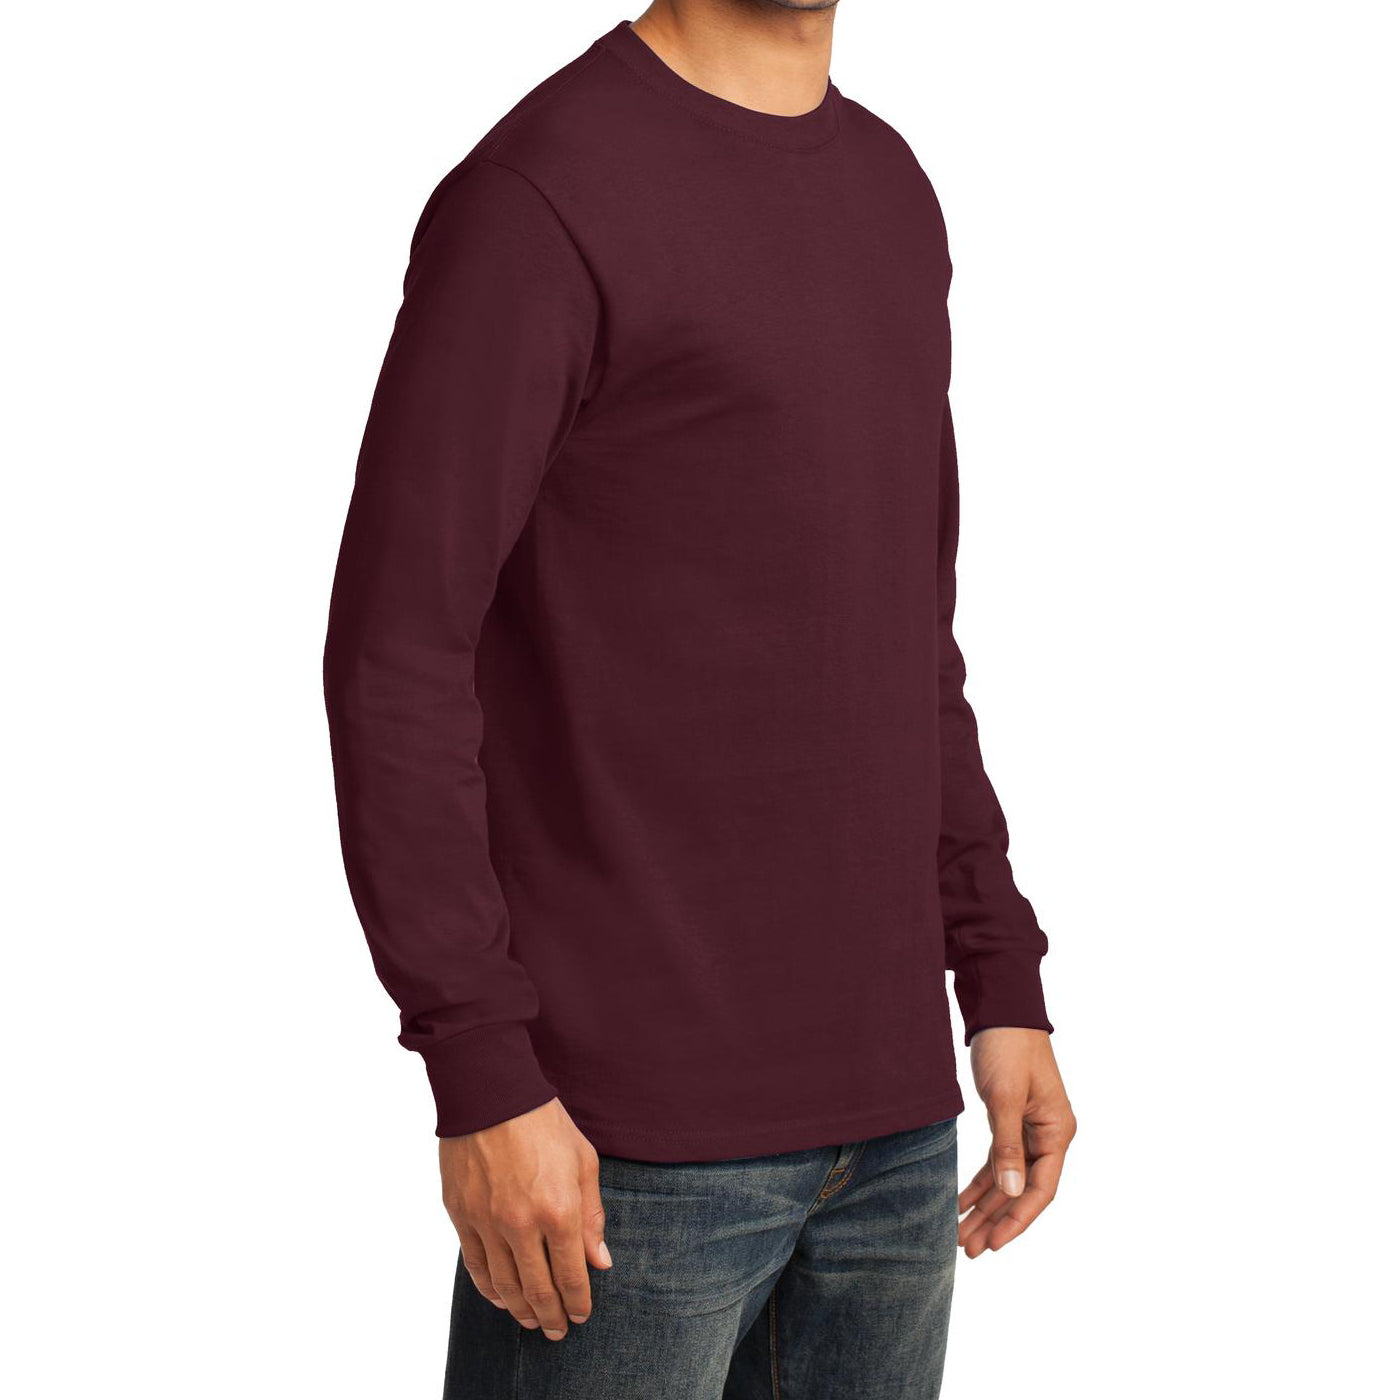 Men's Long Sleeve Essential Tee - Athletic Maroon - Side